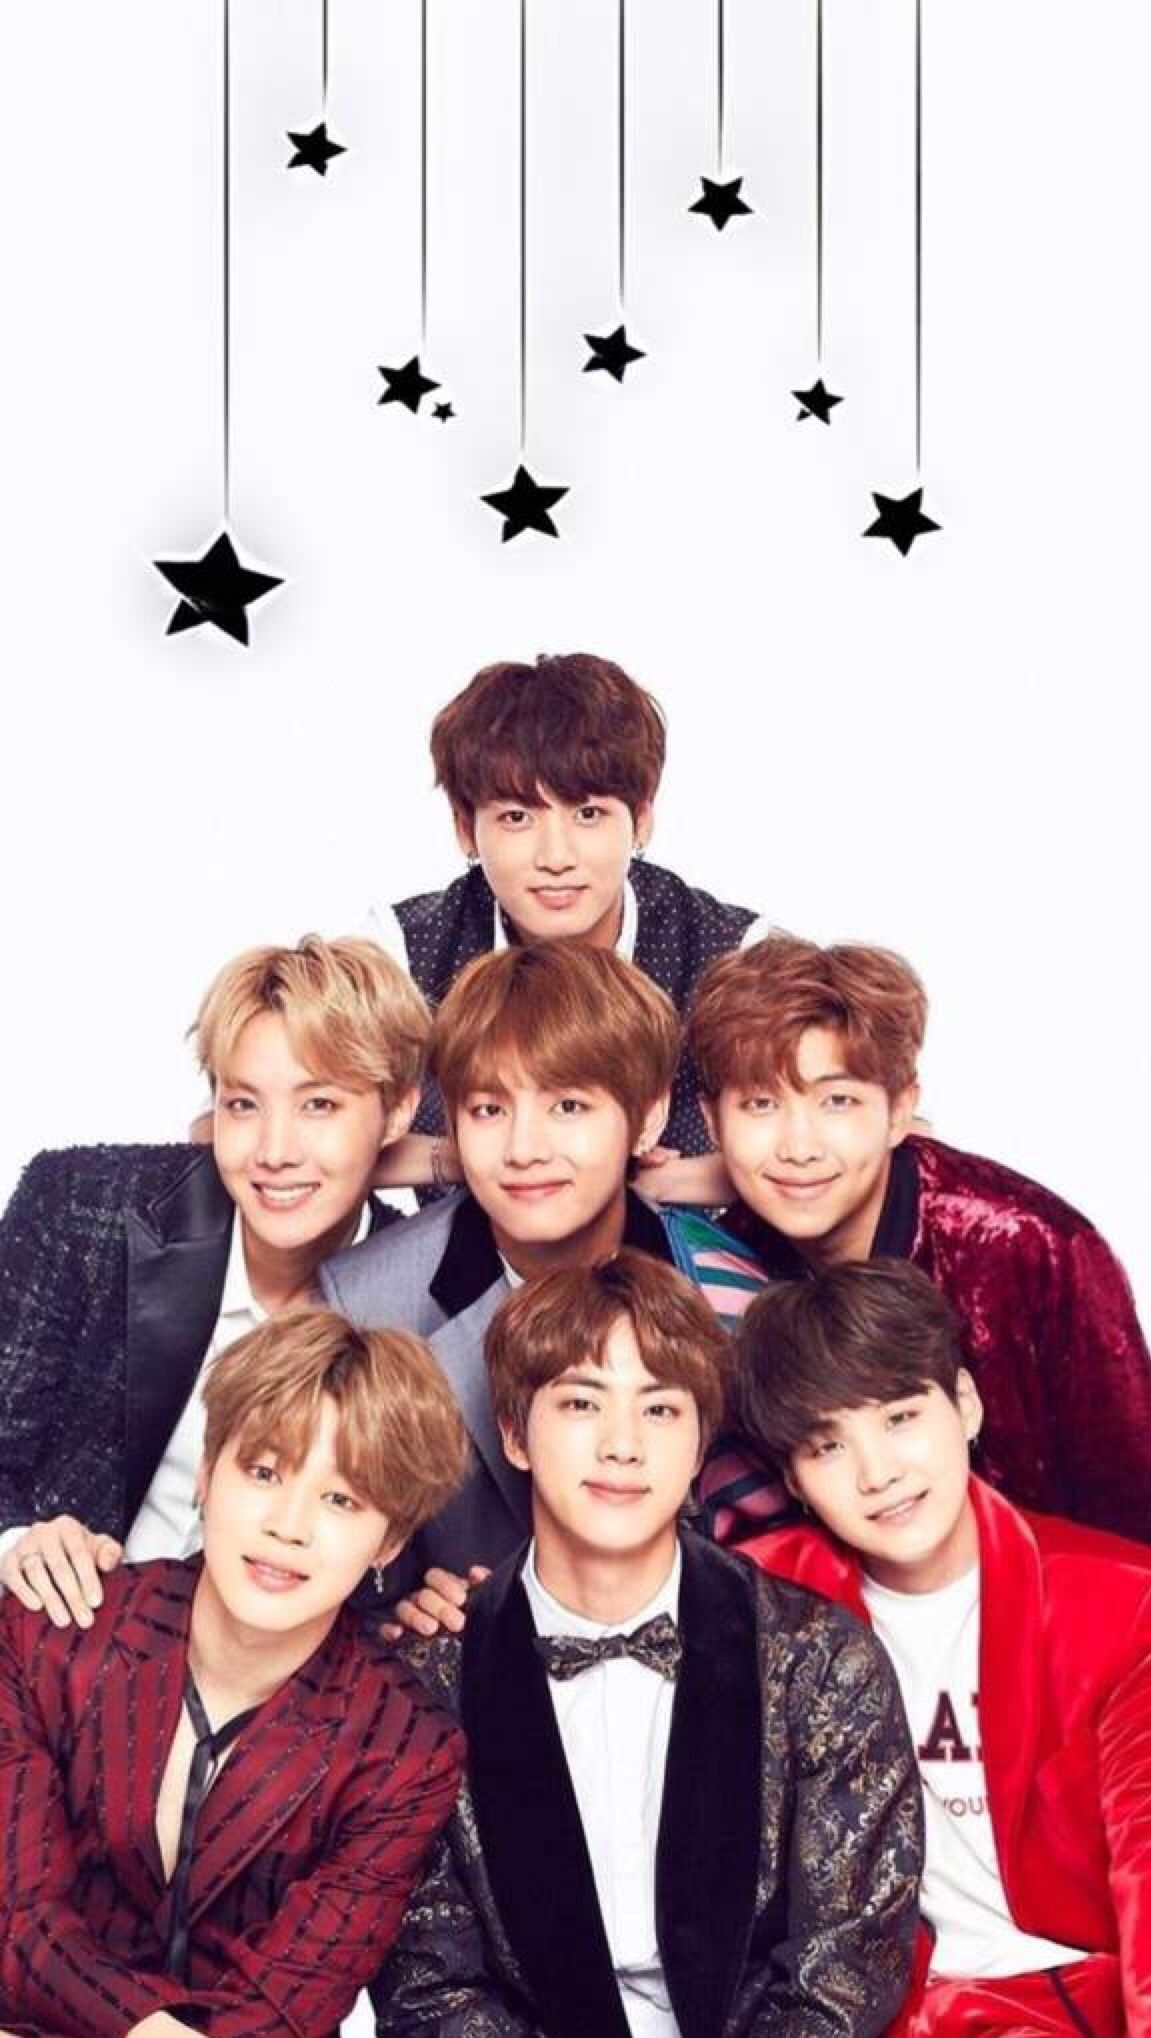 Bts Phone Wallpaper Bts Wallpaper For Phone, Hd Wallpapers